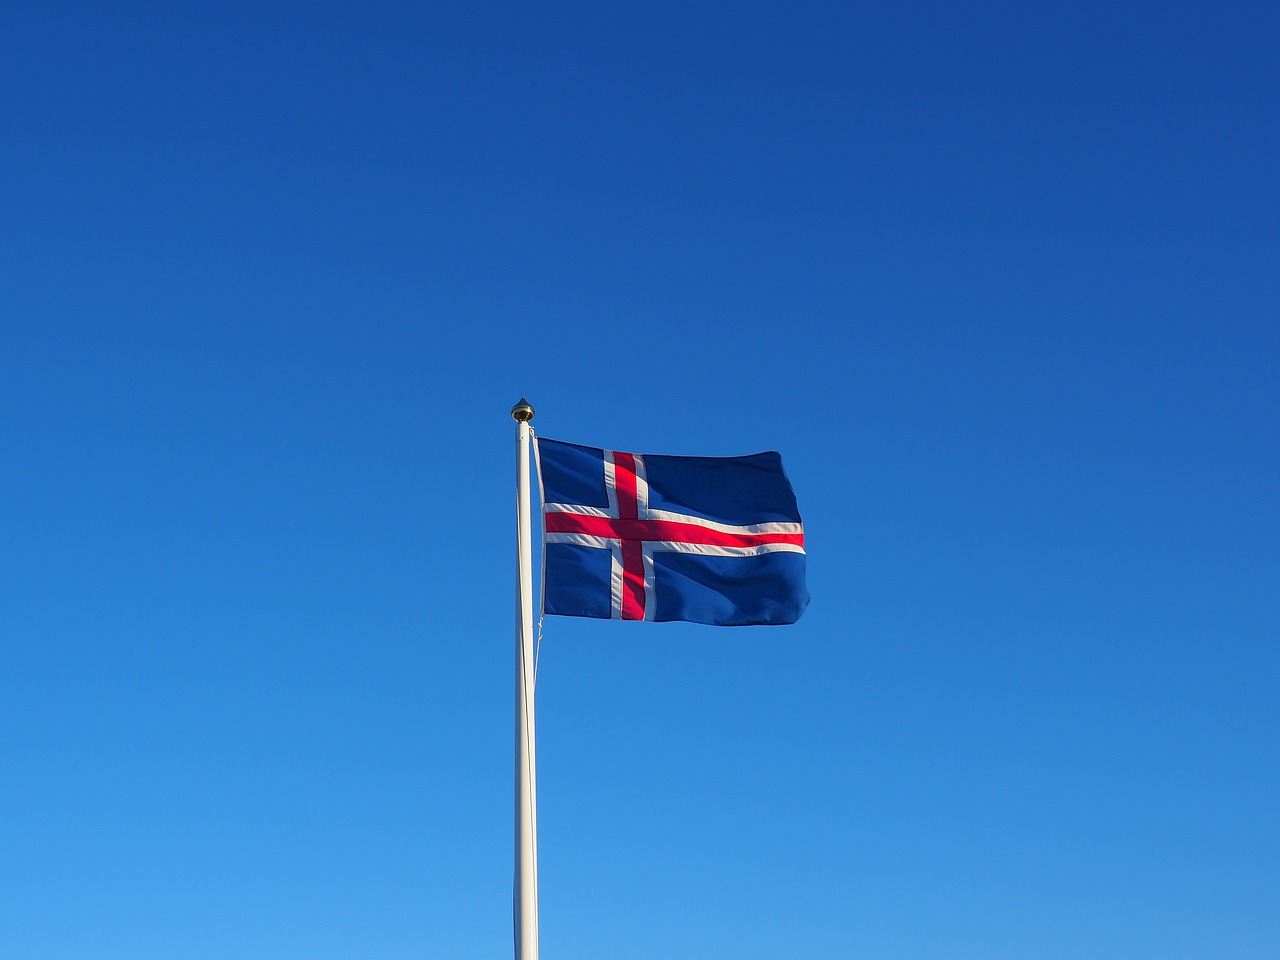 Icelandic flag on June 17th - independence day